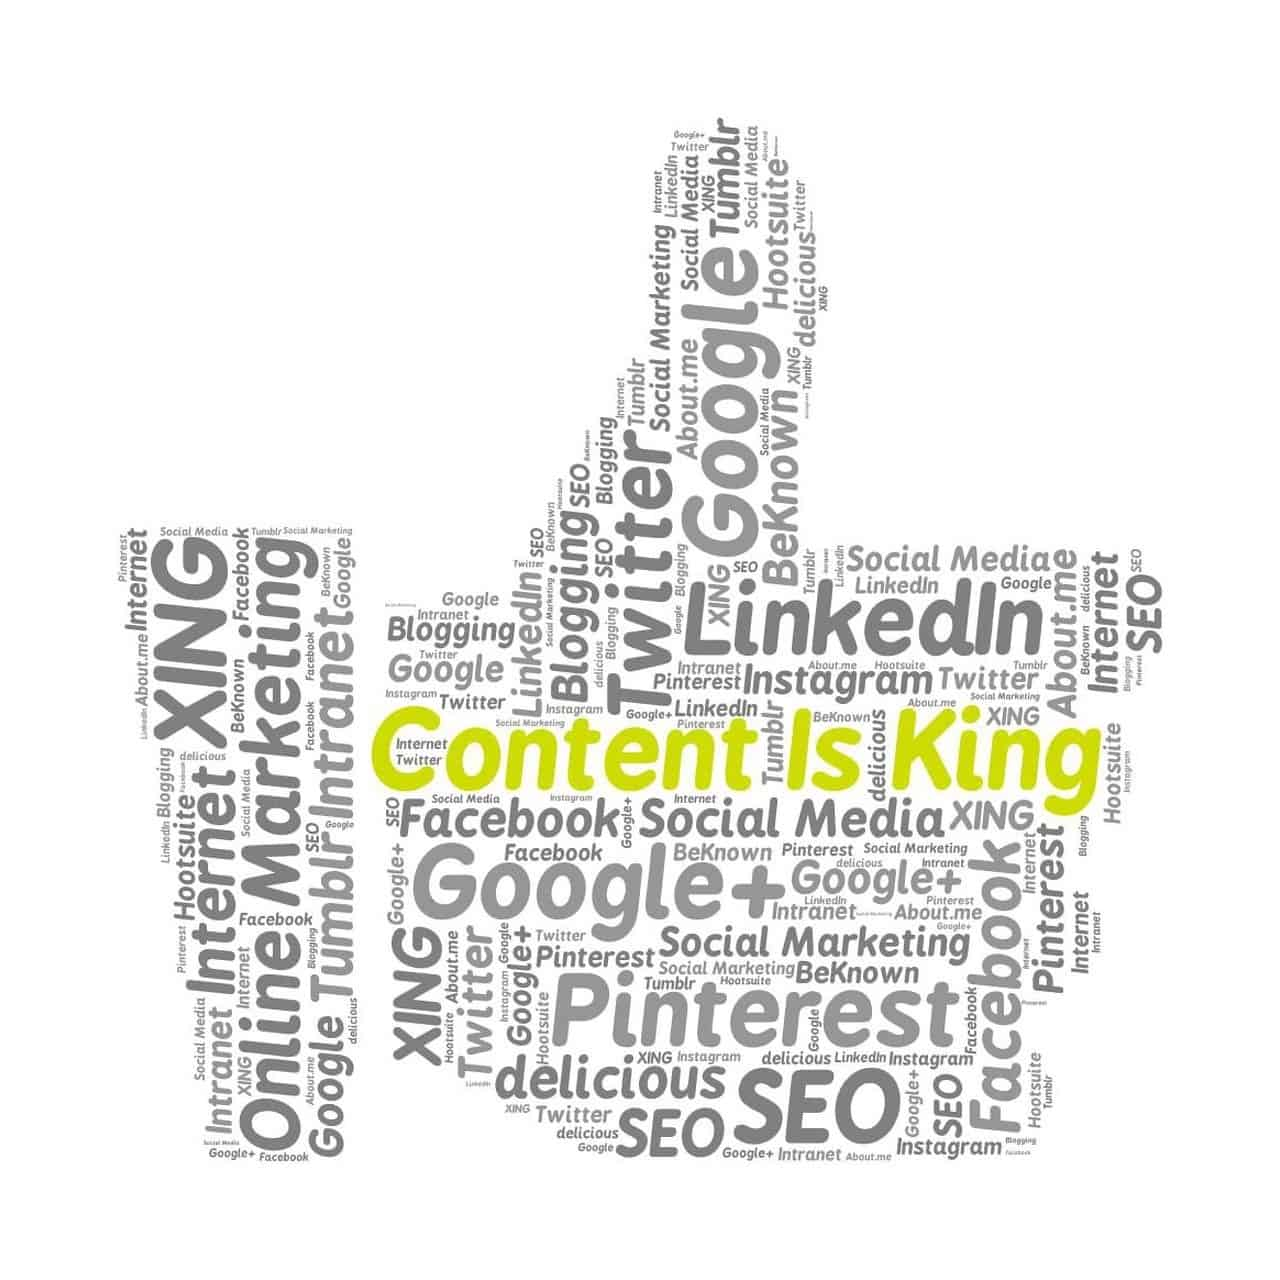 3 Ways Social Media and Content Marketing Can Work Together 3